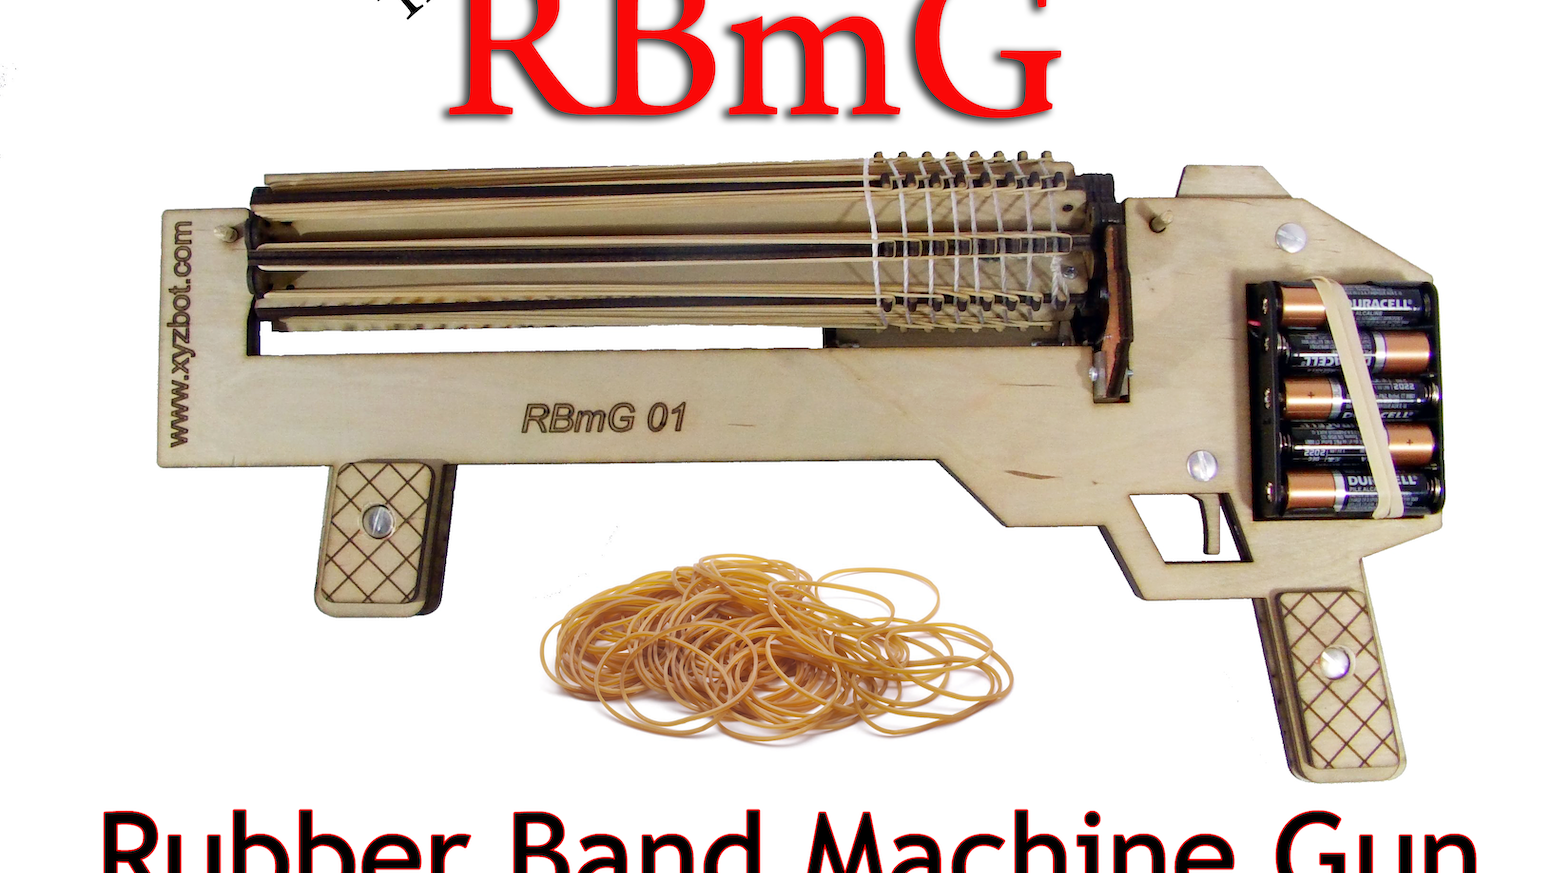 A fully automatic, rapid fire, rubber band gun.   - If you missed the kickstarter, go to www.kerkits.com to order an RBmG.